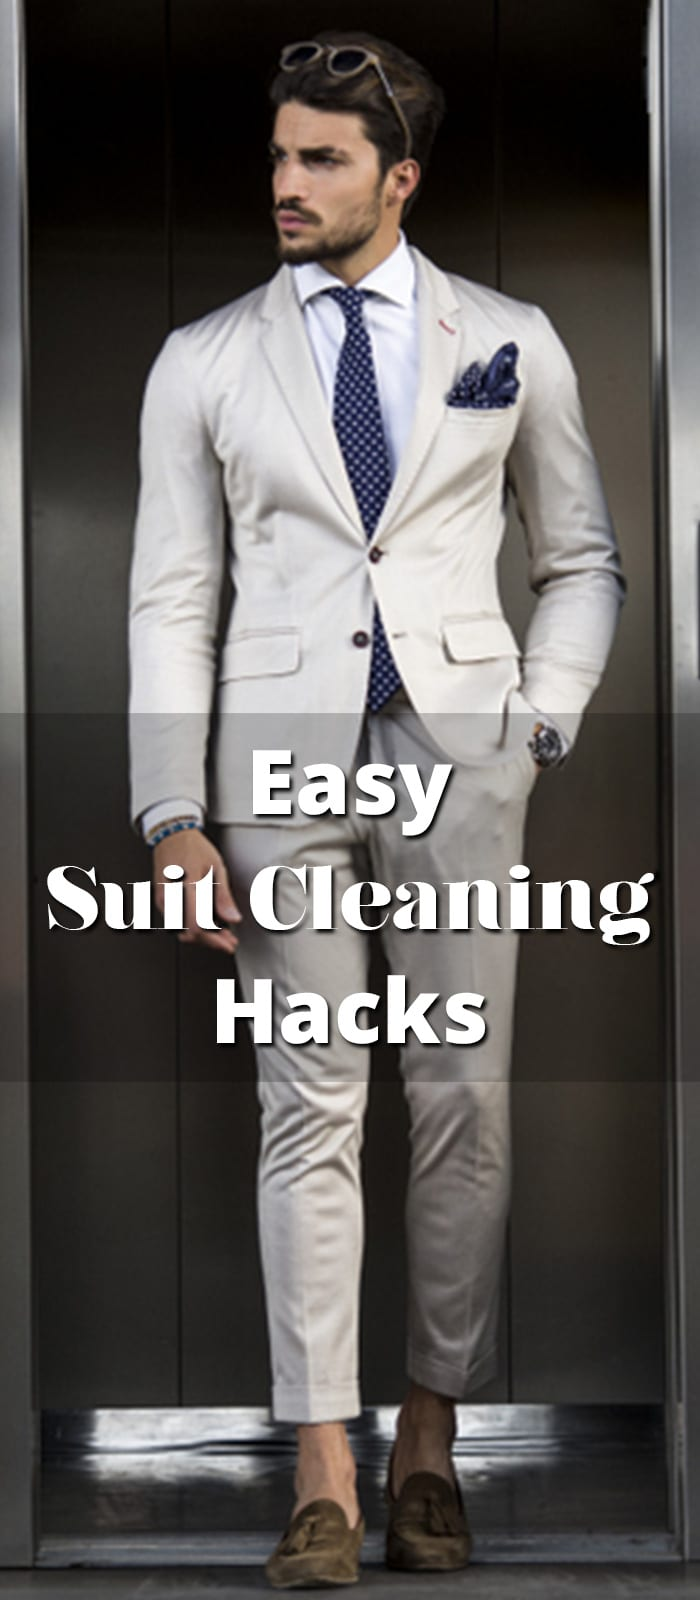 Easy Suit Cleaning Hacks